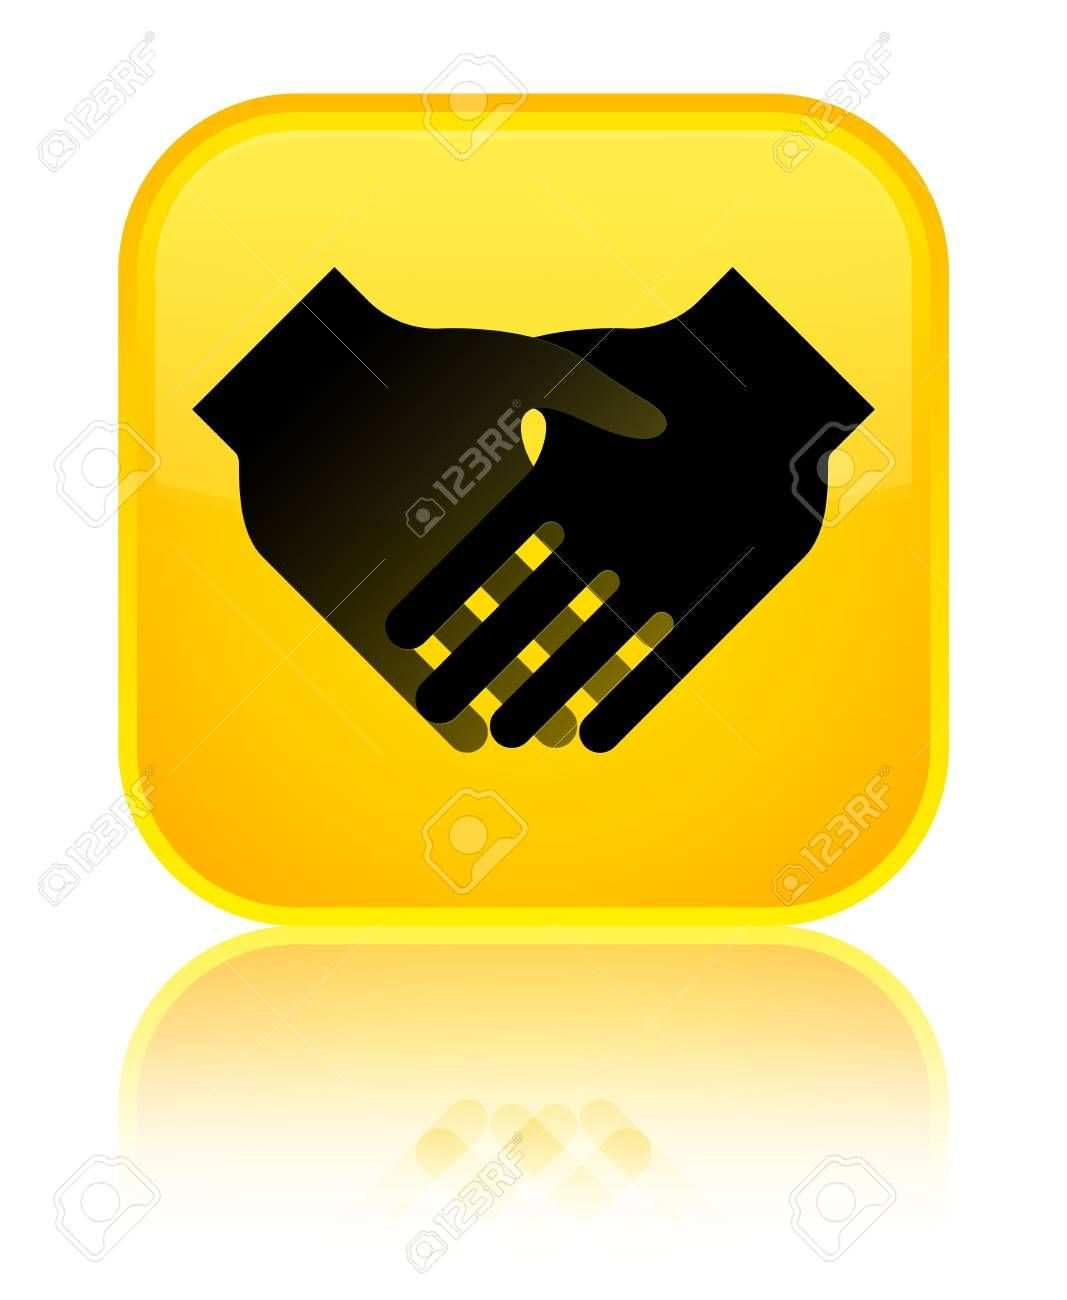 Handshake Icon Isolated On Special Yellow Square Button Reflected